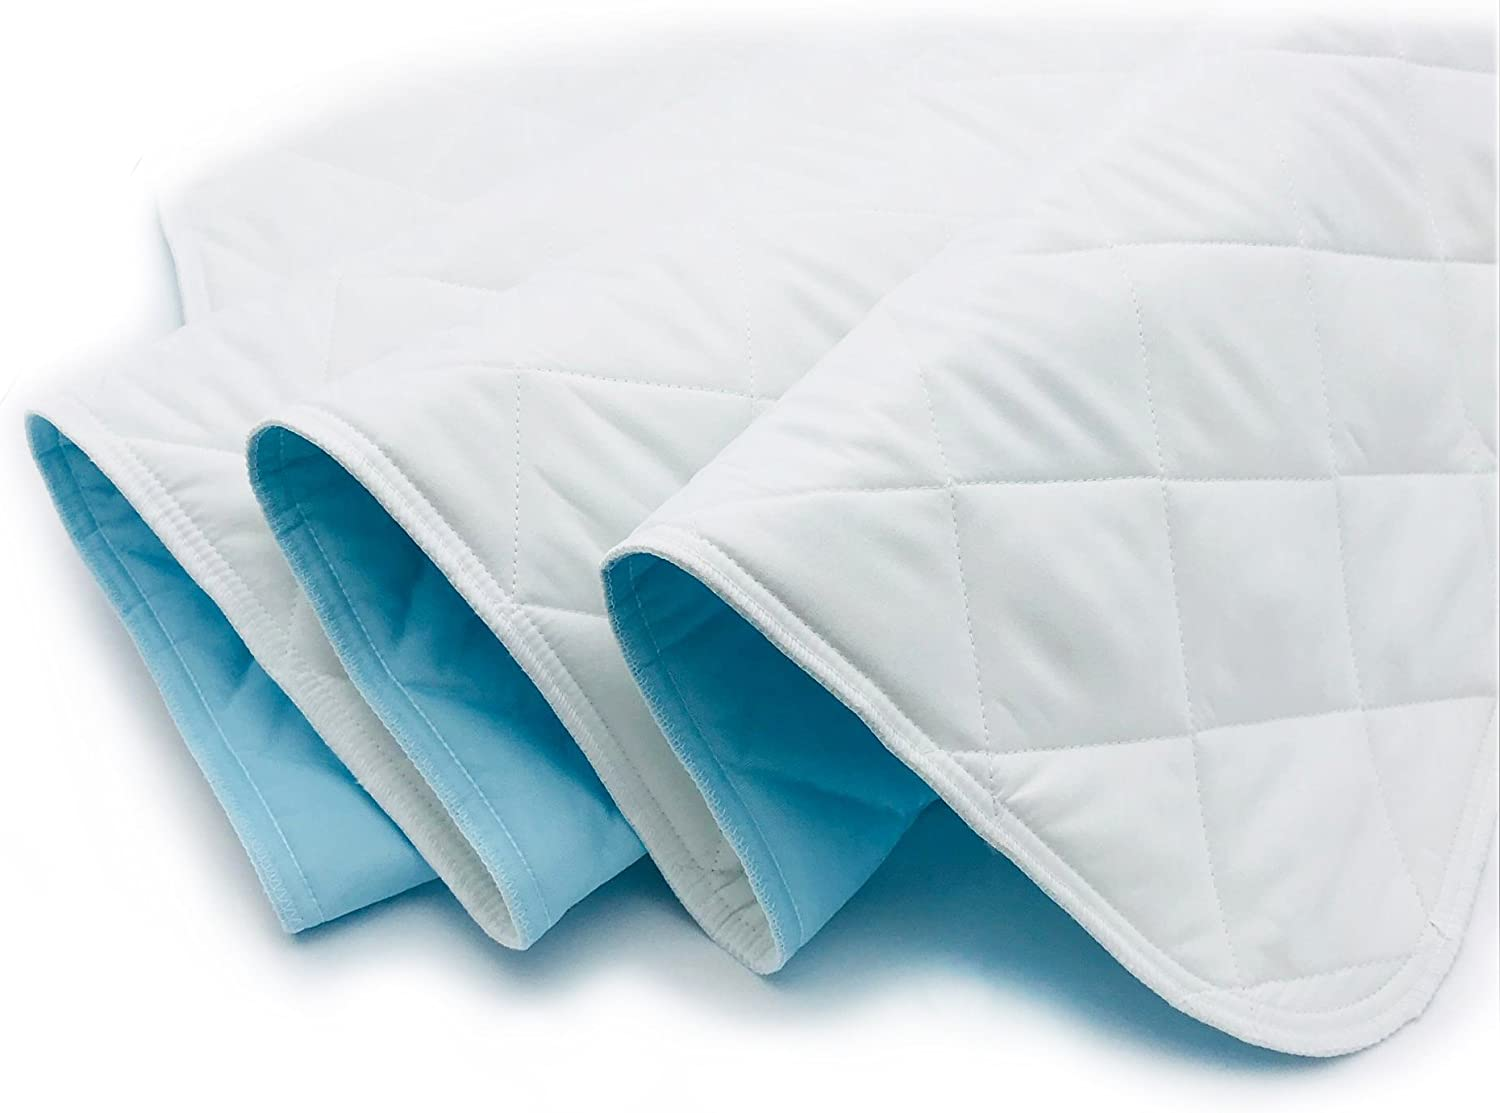 Buy KANECH Bed Pads for Incontinence Washable – 44 x 52 Inches - Extra 5  Layer - Waterproof Pads for Adult,Children,Pets Online in Turkey. B076X1LF6R